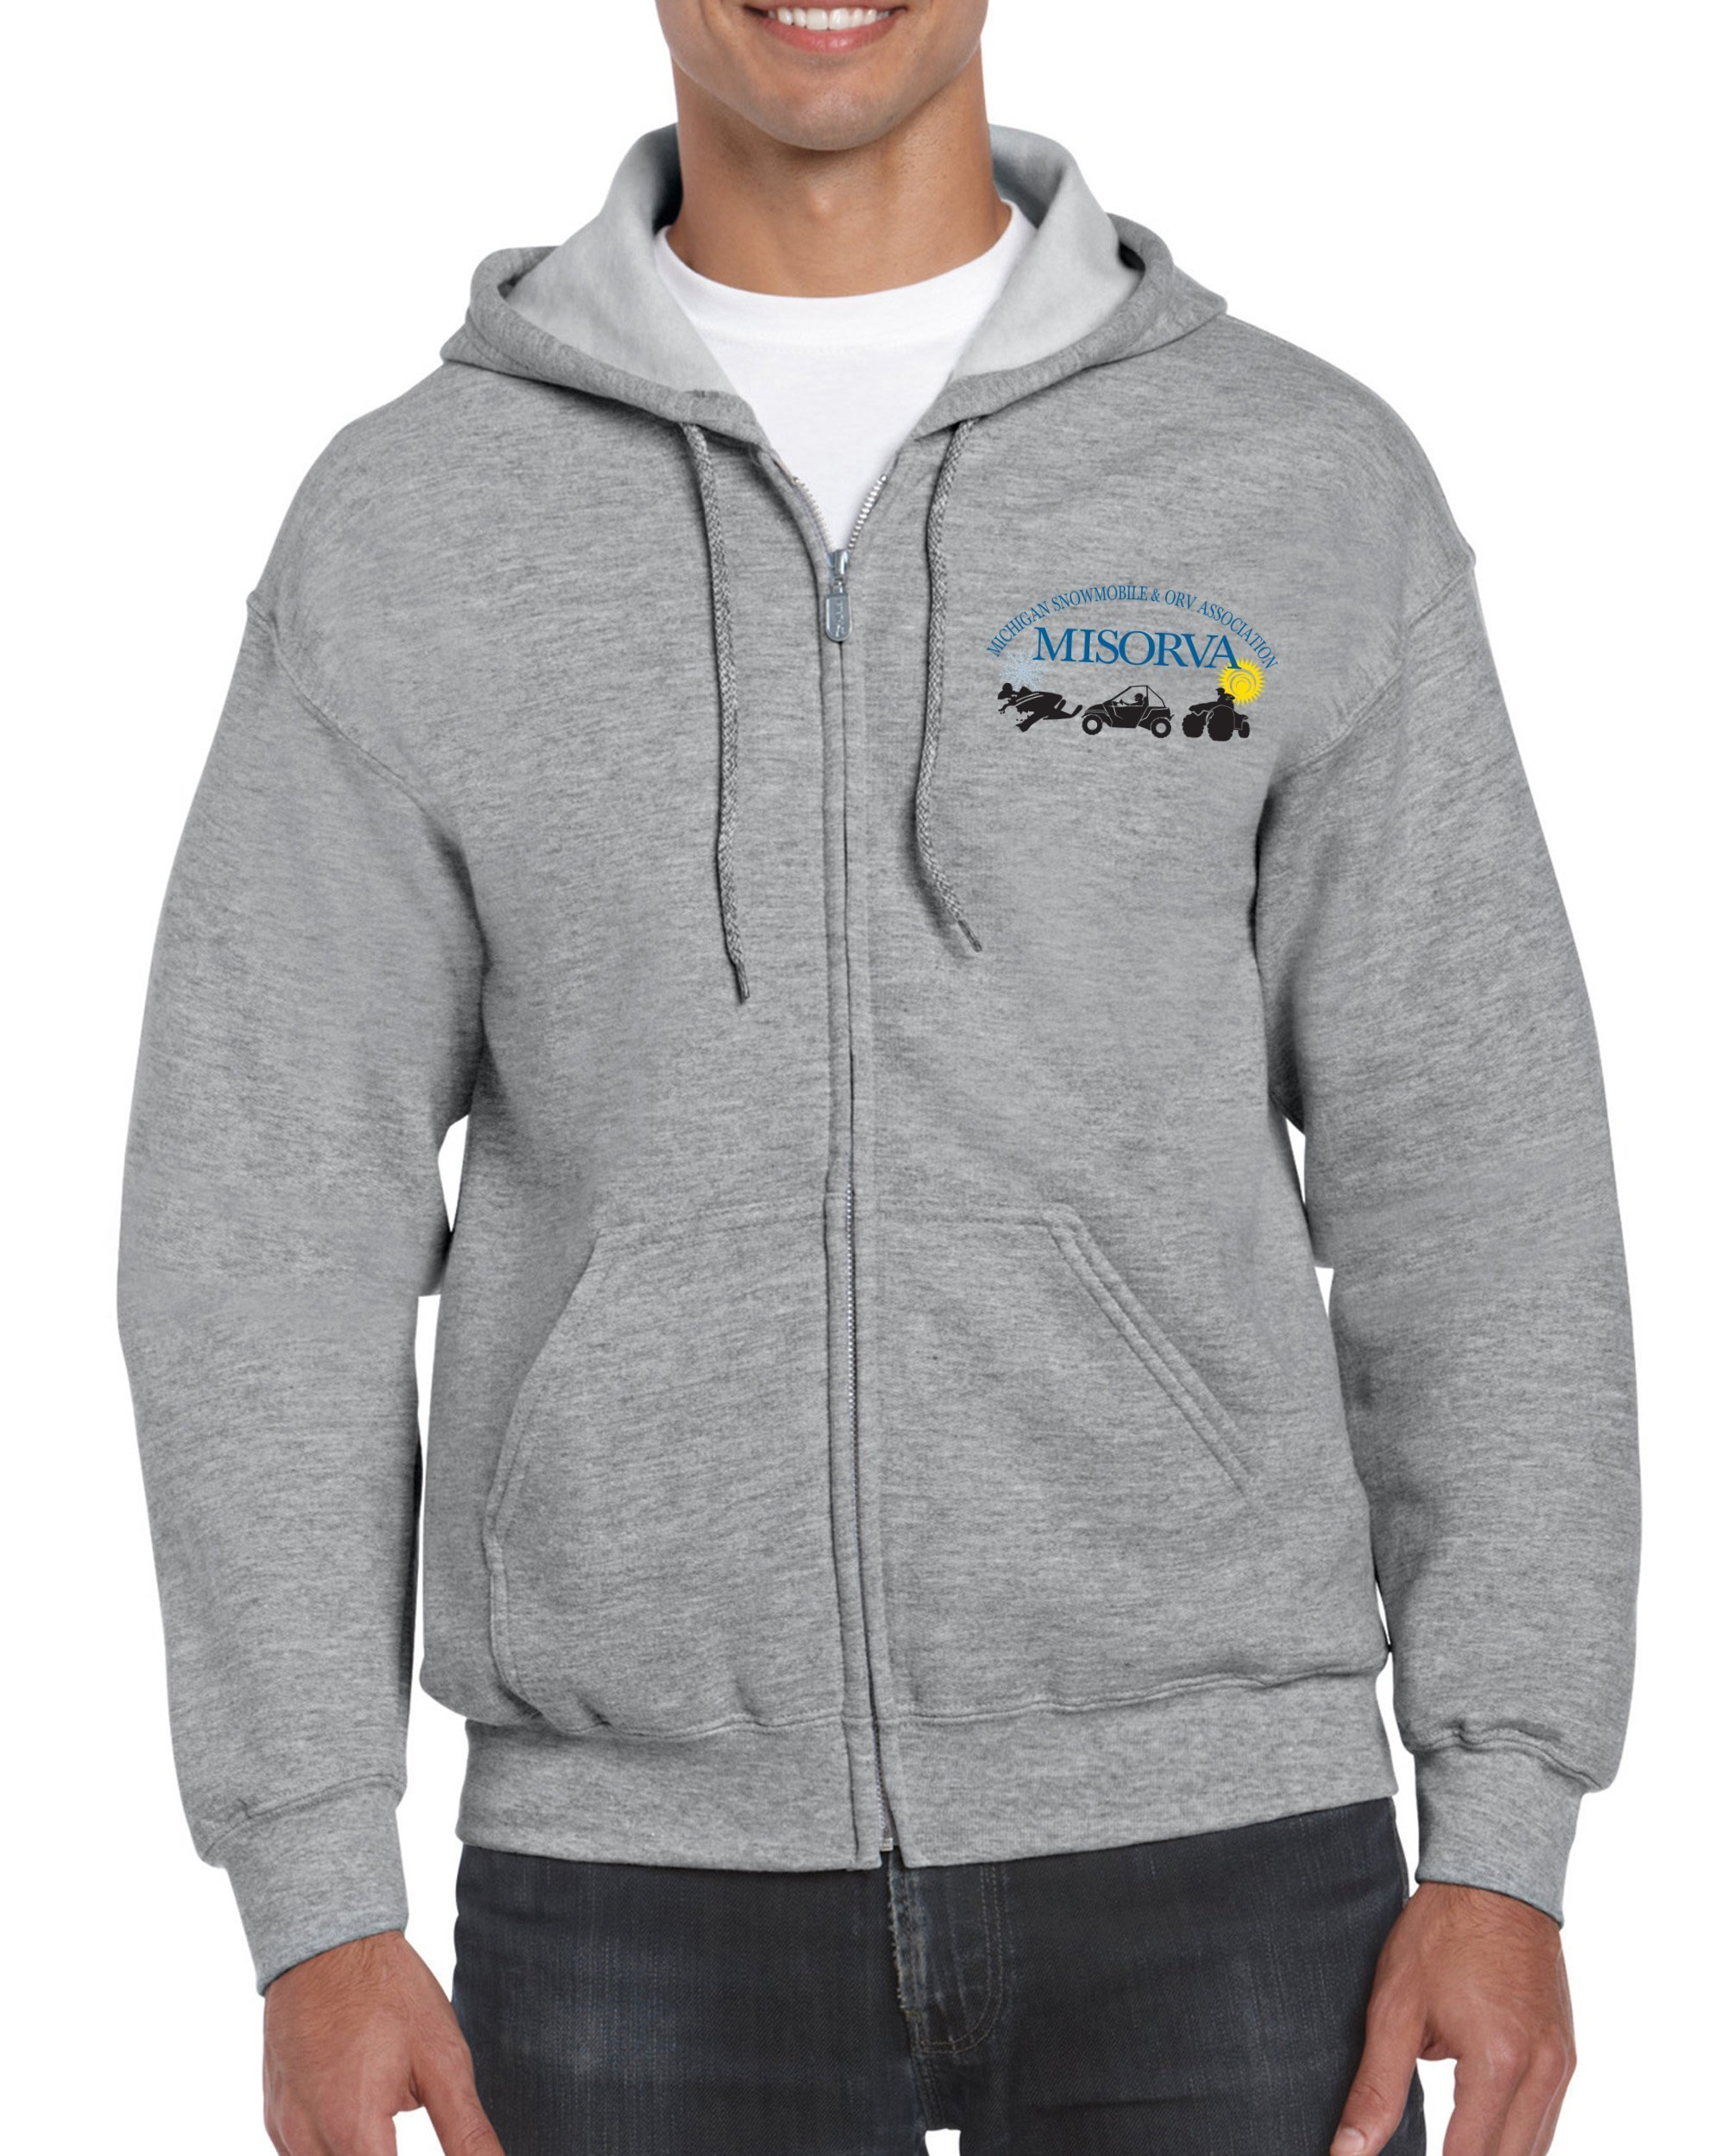 GD346-full-zip-lightgray